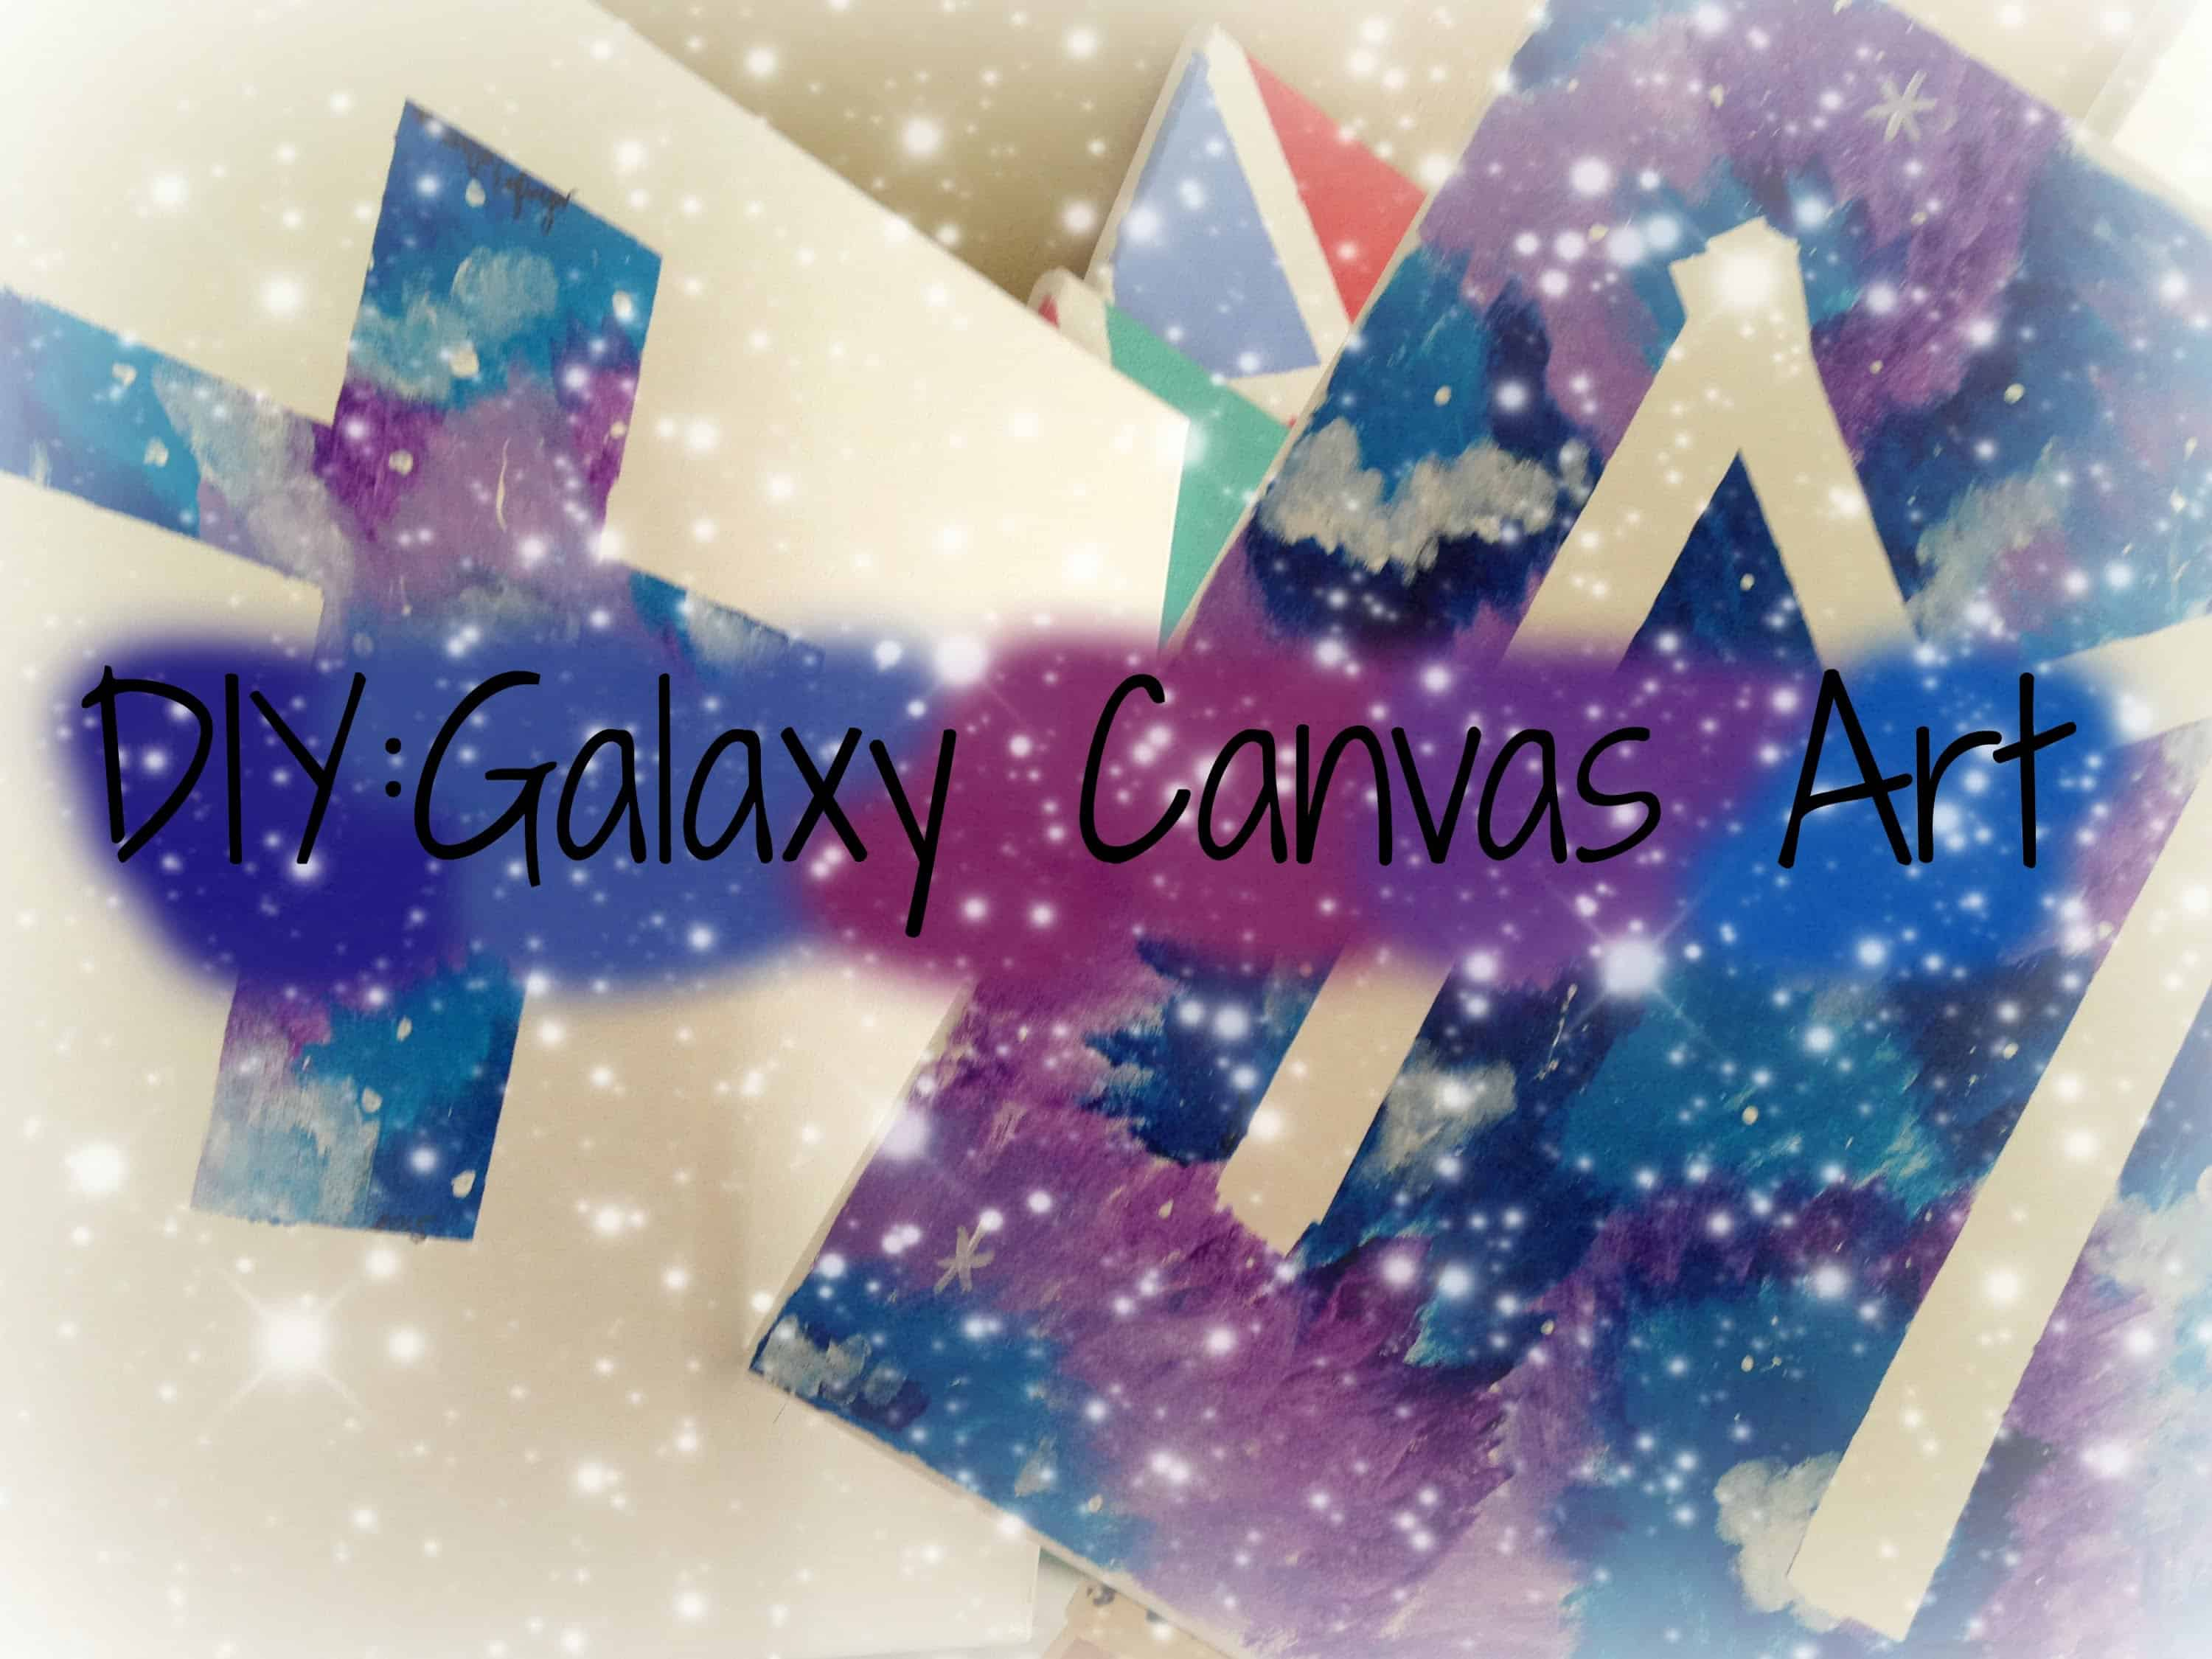 Tape shape galaxy canvas art